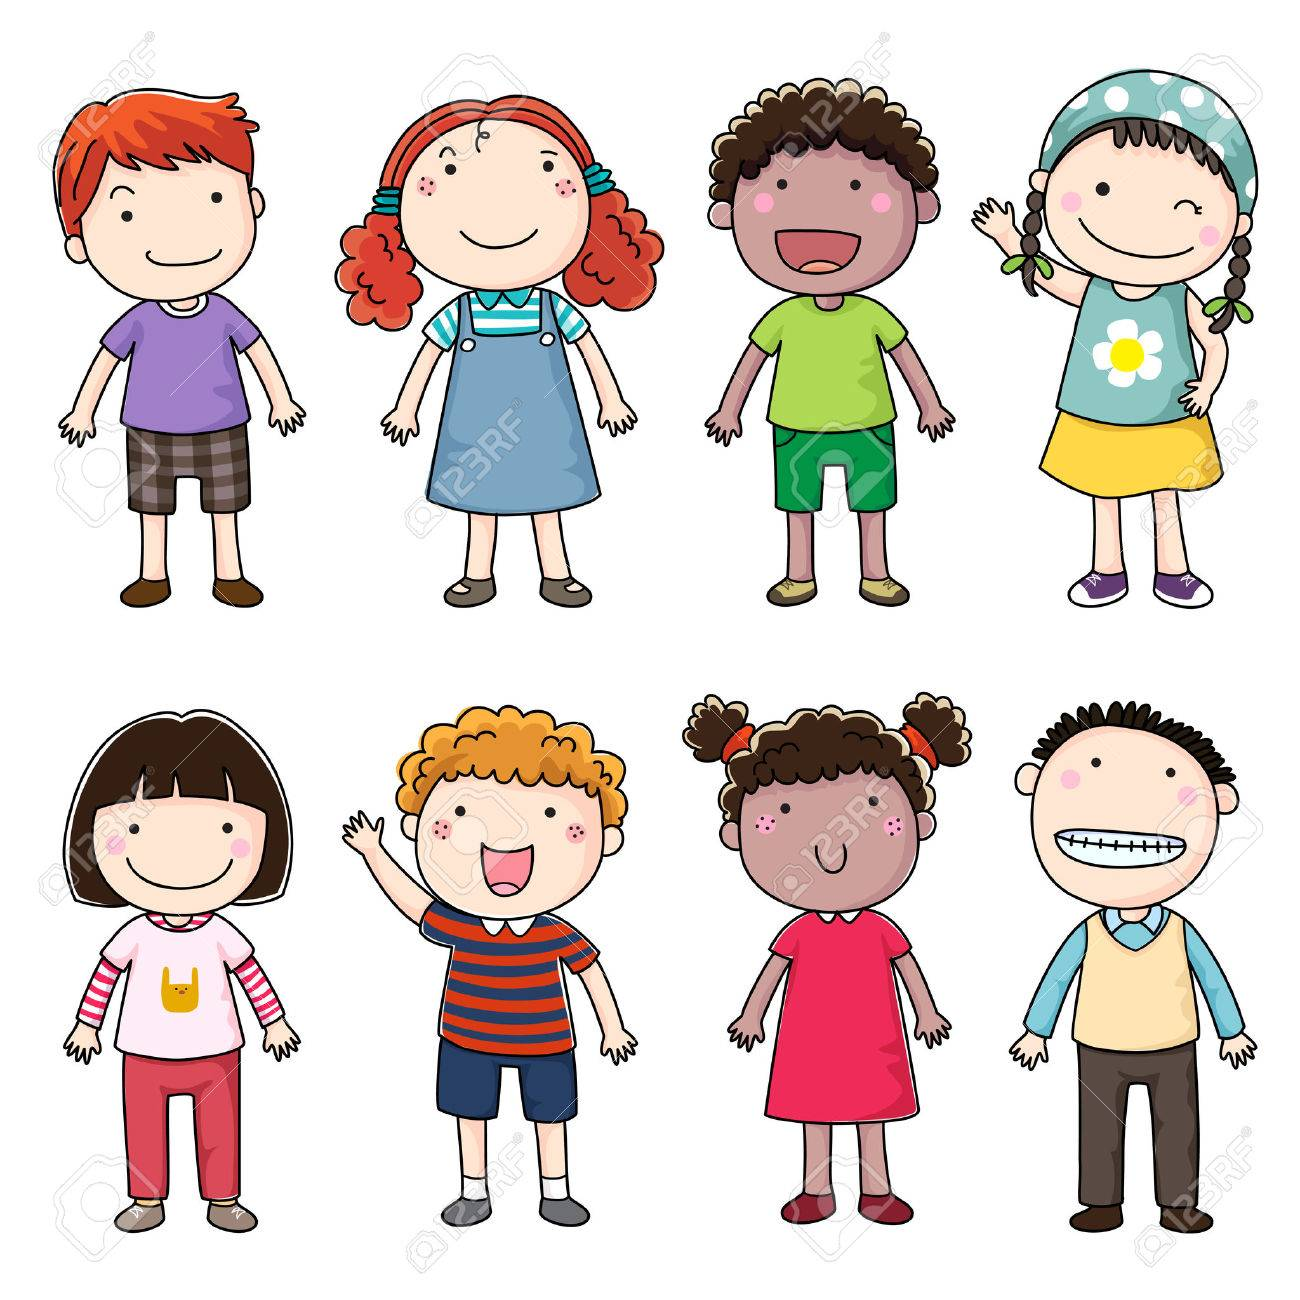 Collection of happy children - 51009962